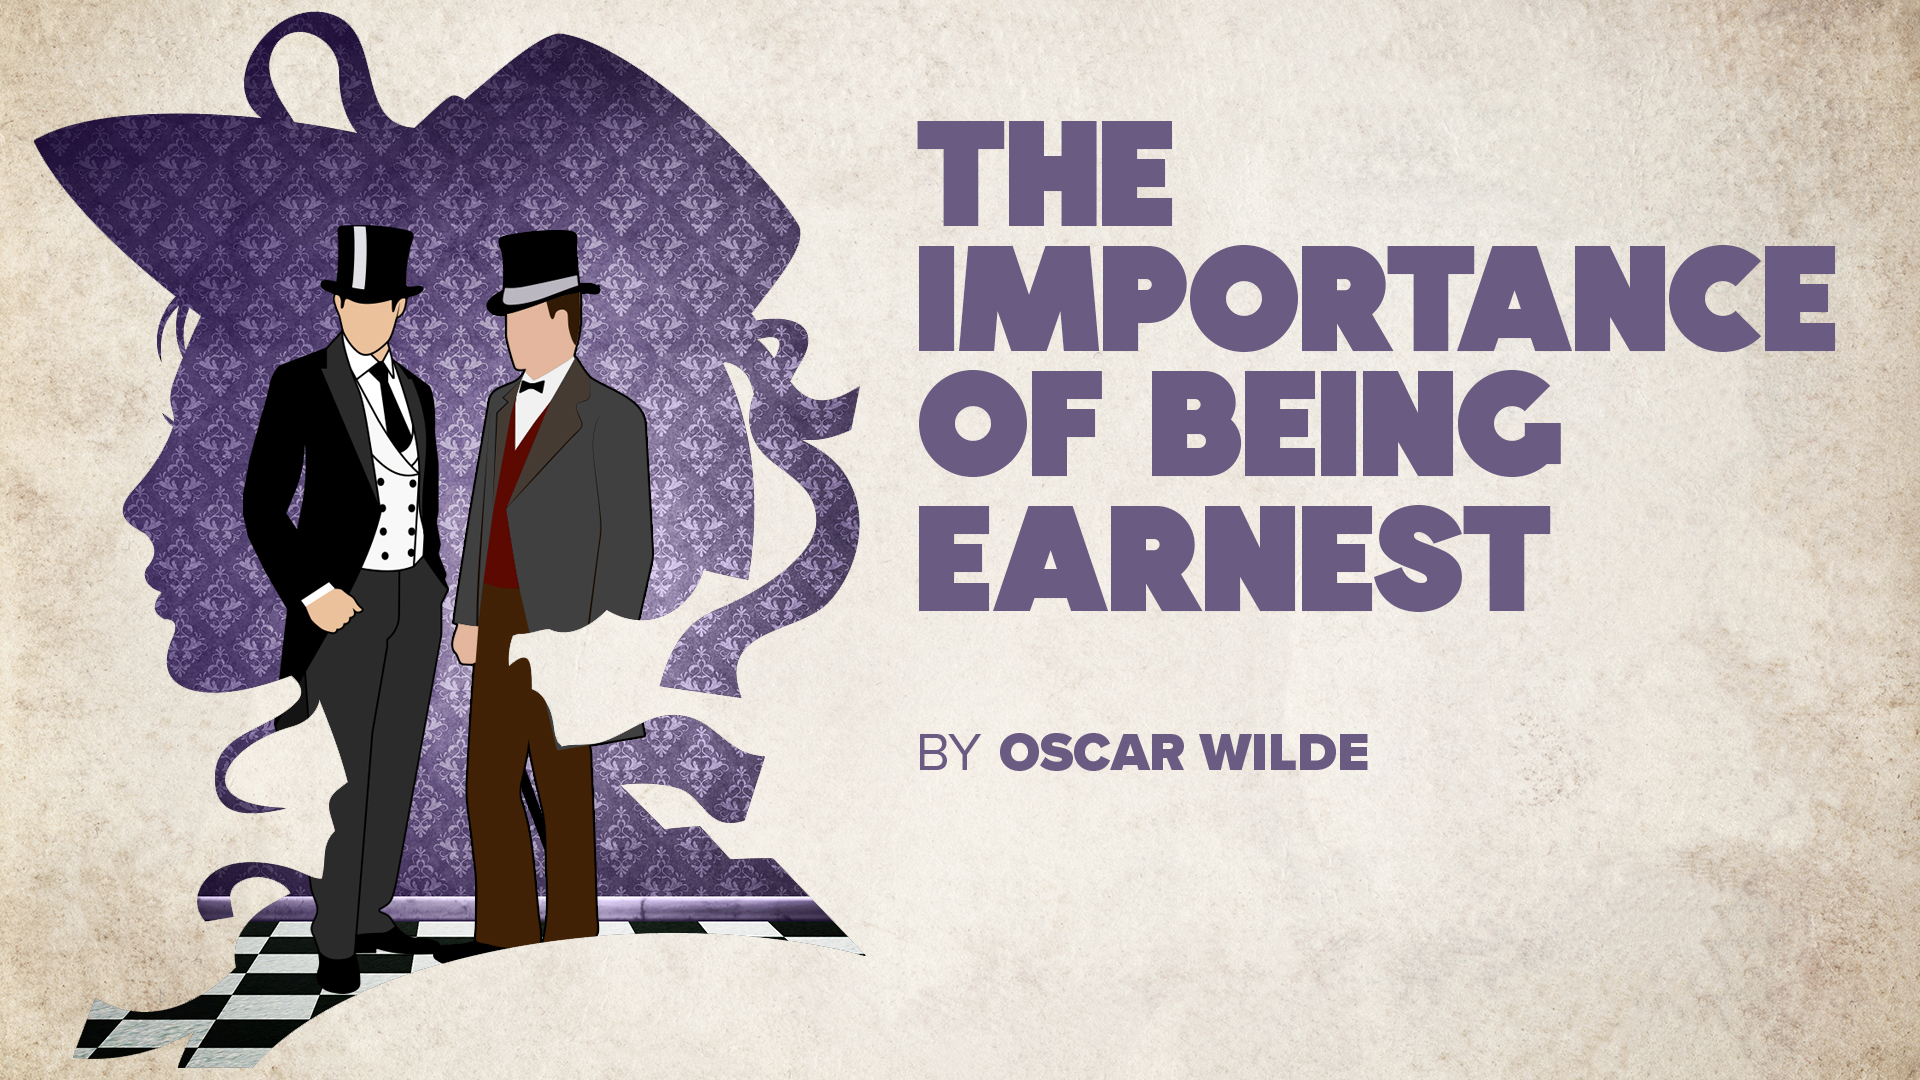 The Importance of Being Earnest Title Card with Credits